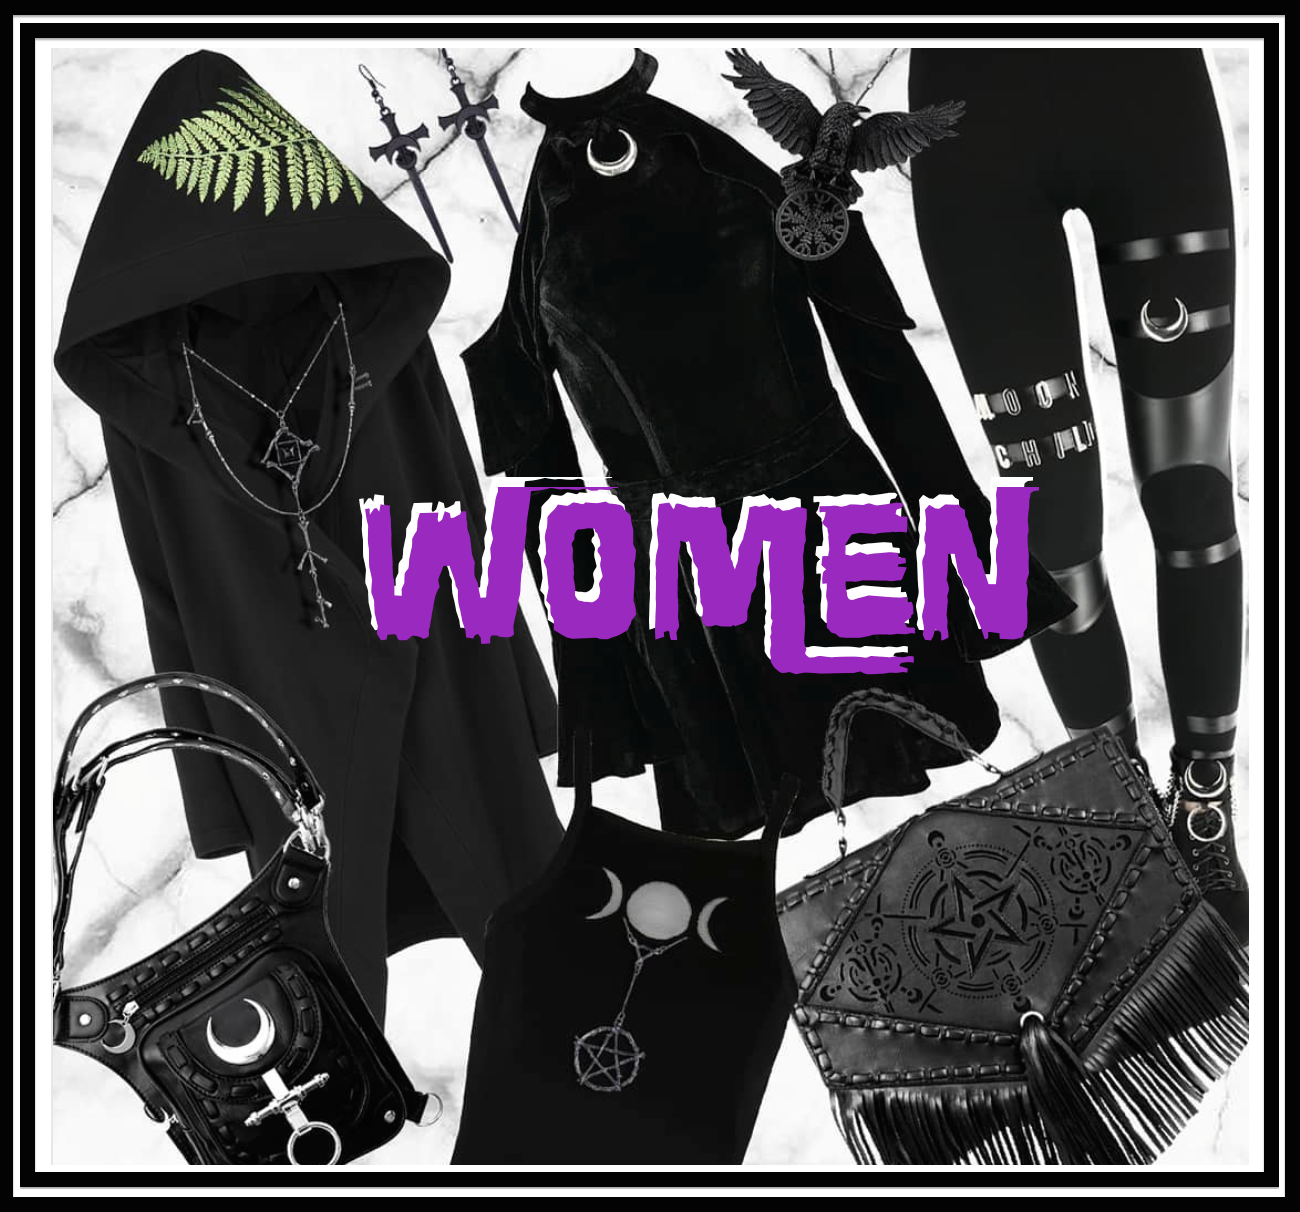 Gothic and Alternative clothing at a reasonable price from